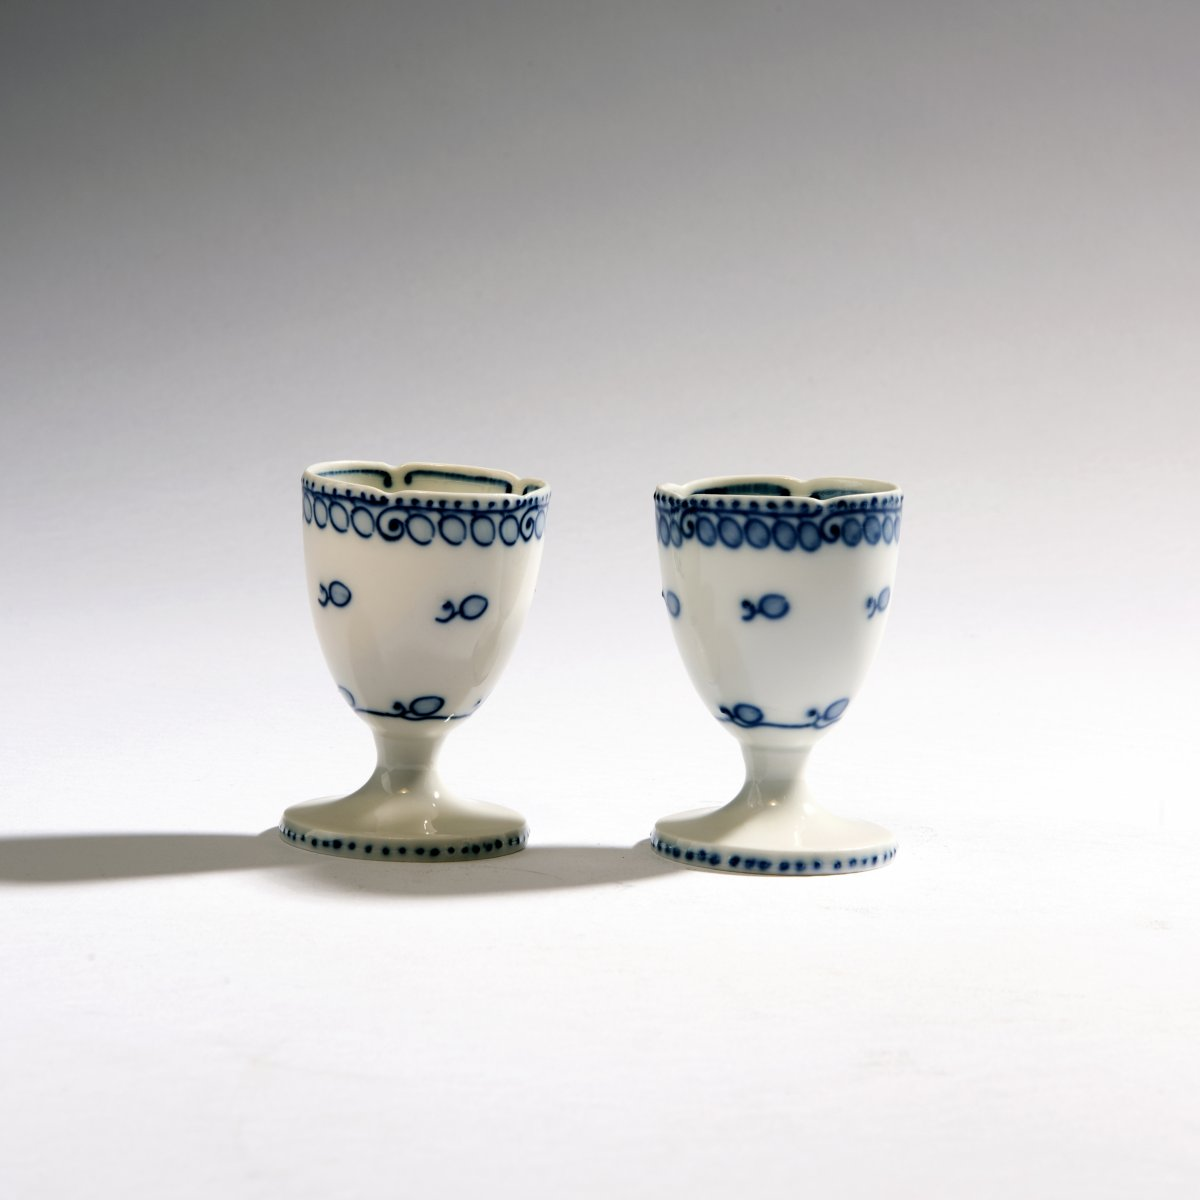 Lot 26 - Richard Riemerschmid, Two eggcups, 1903/04Two eggcups, 1903/04H. 6.9-7 cm. Made by StPM Meissen,